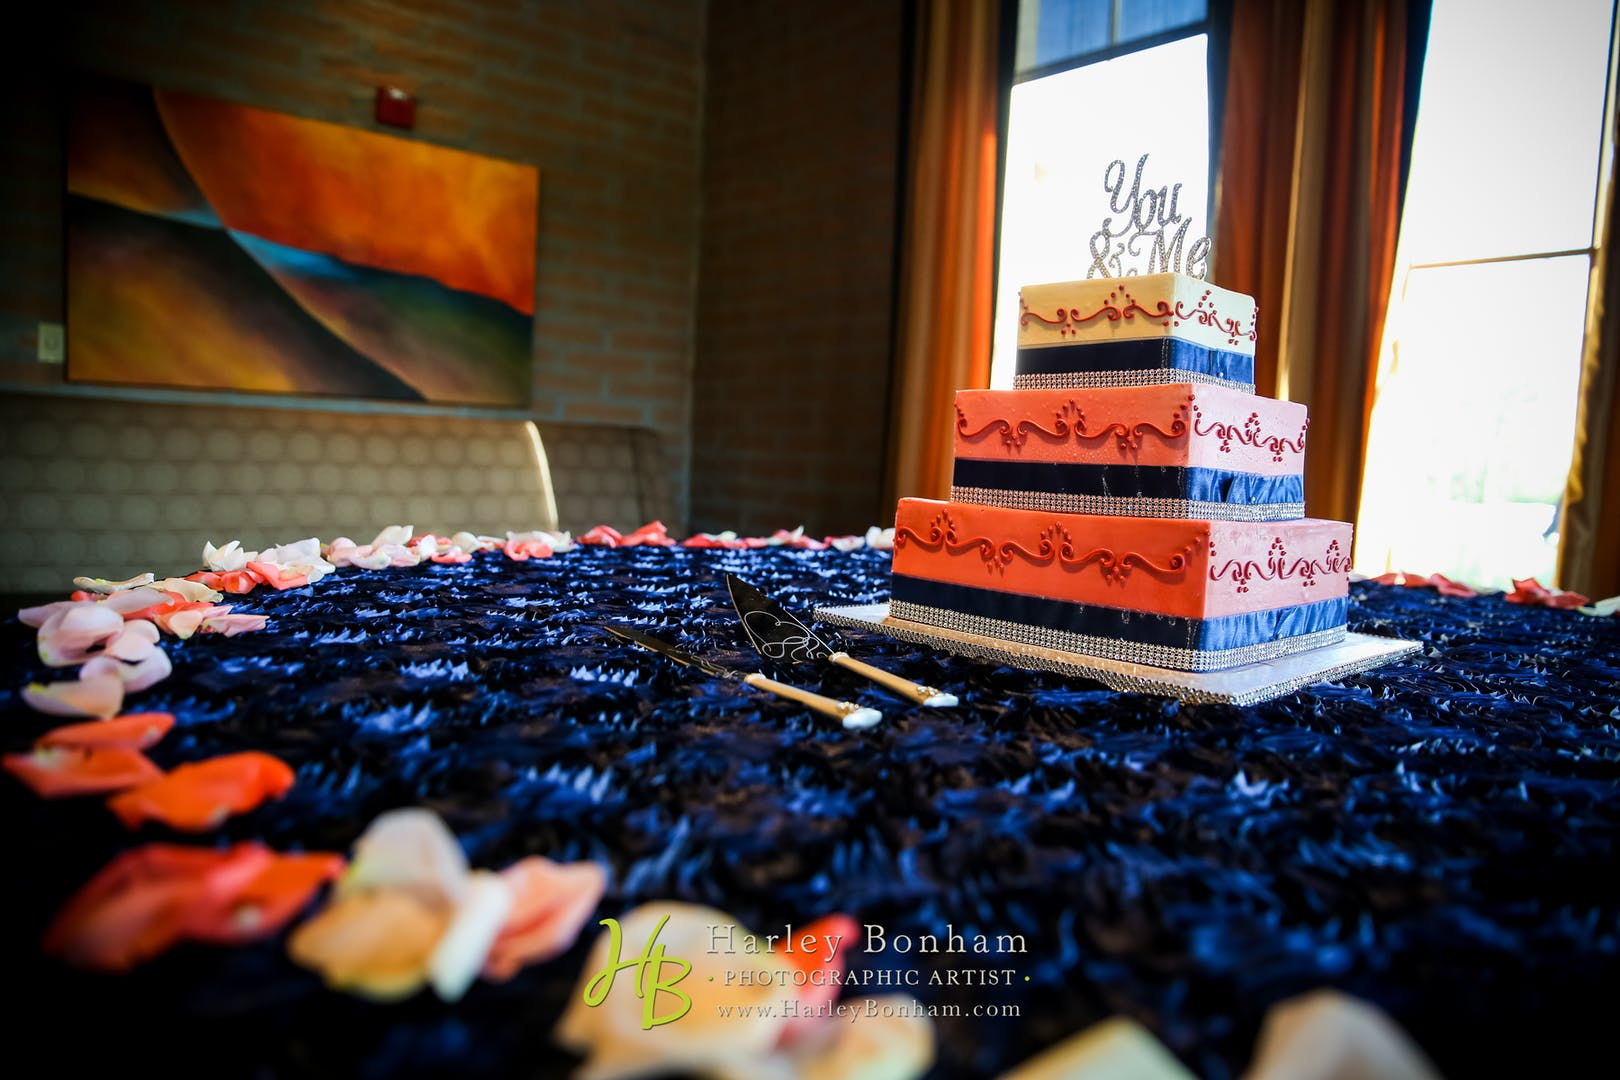 Rose and white wedding cake atop a table adorned with a deep blue cloth and lined with rose petals.